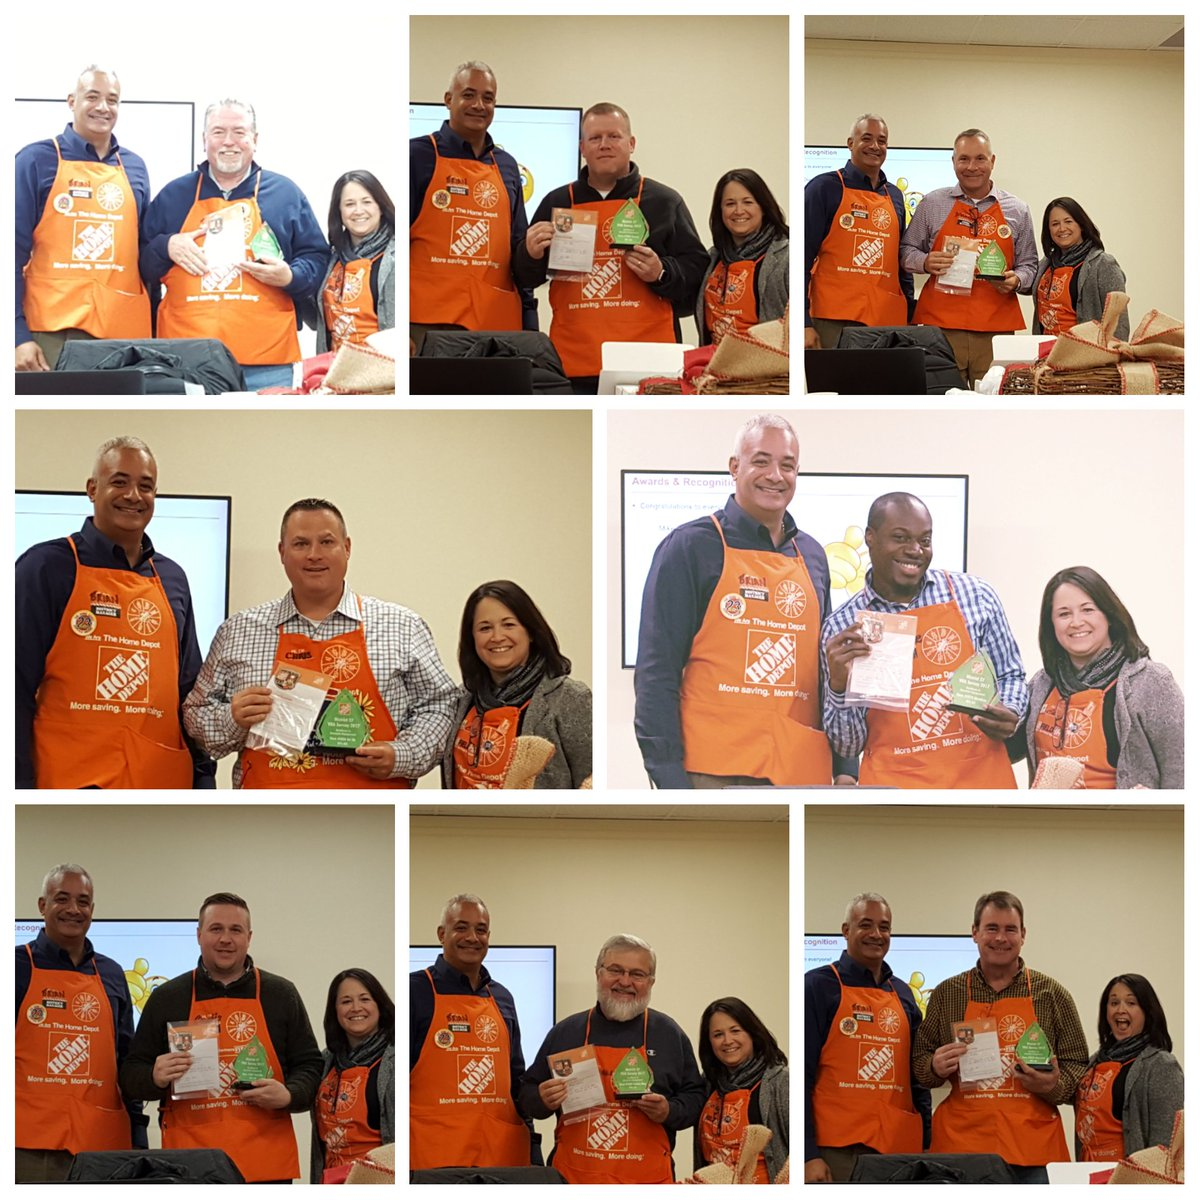 #D27 #StoreManagers #TripleGreenTeam #100%Club #MidAtlantic #VOA #MyDistrictRocks #MySmTeamRocks  #Recognition thanks to all our teams for all you do to take care of our associates and customers and thank you @b_mungul for all you do for us keep up the great work<br>http://pic.twitter.com/S1bYjzOqIl &ndash; à The Home Depot